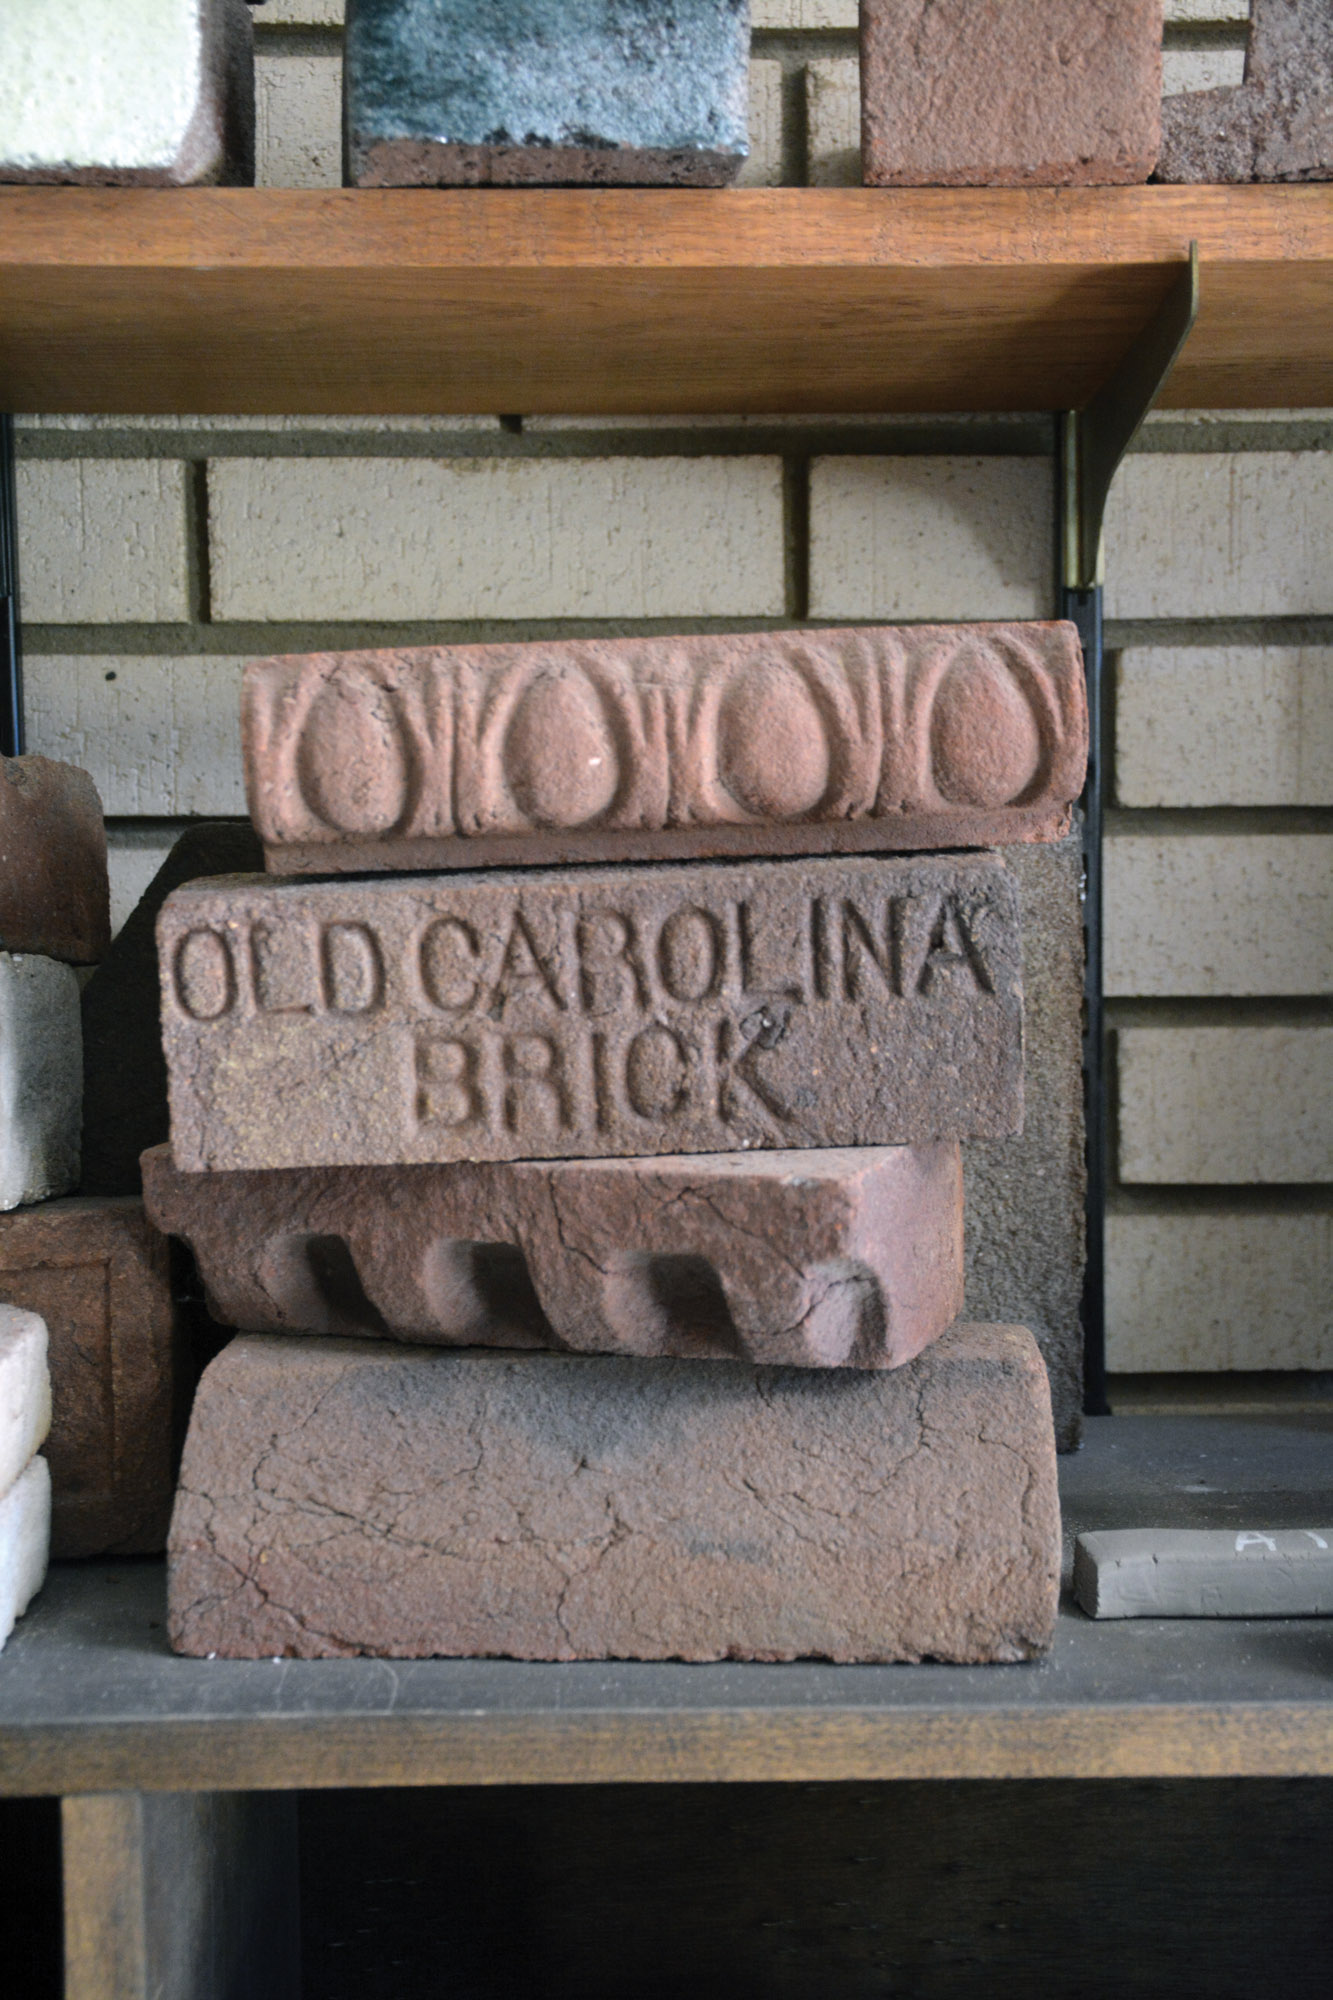 Old Carolina Brick